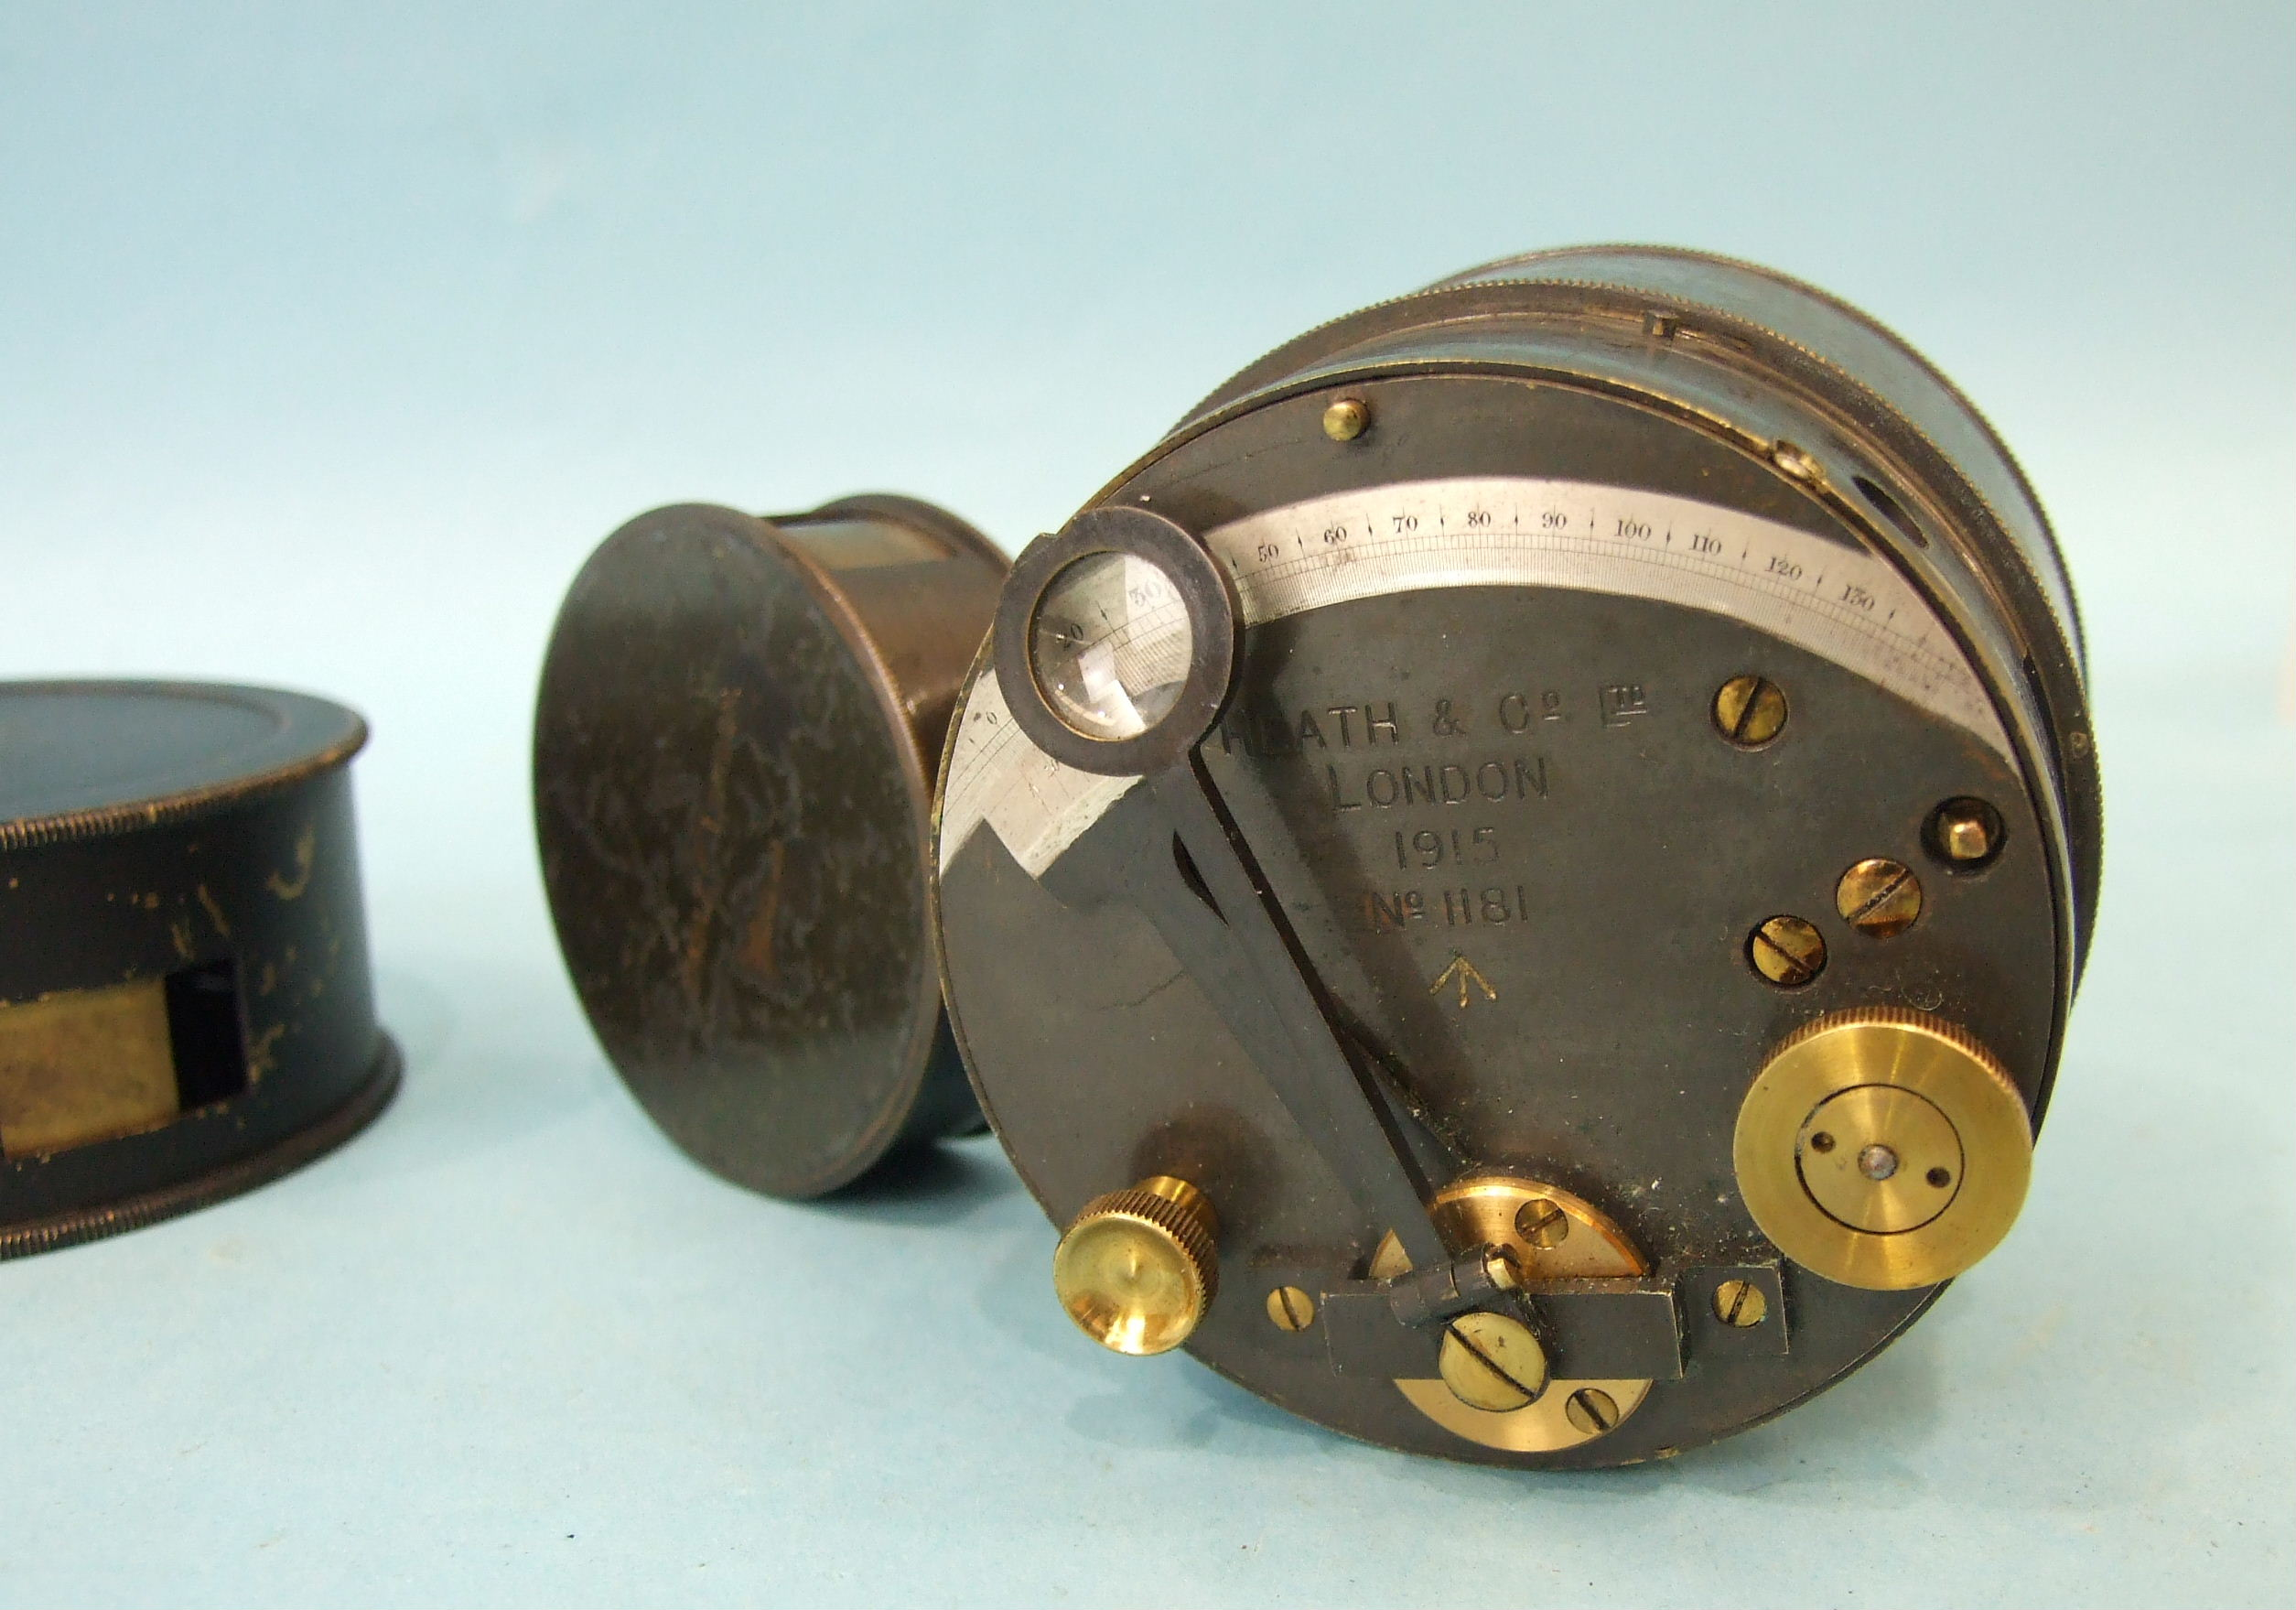 A Heath & Co. Ltd pocket drum sextant dated 1915, no.1181 and two pocket levels, one marked MDS Ltd,